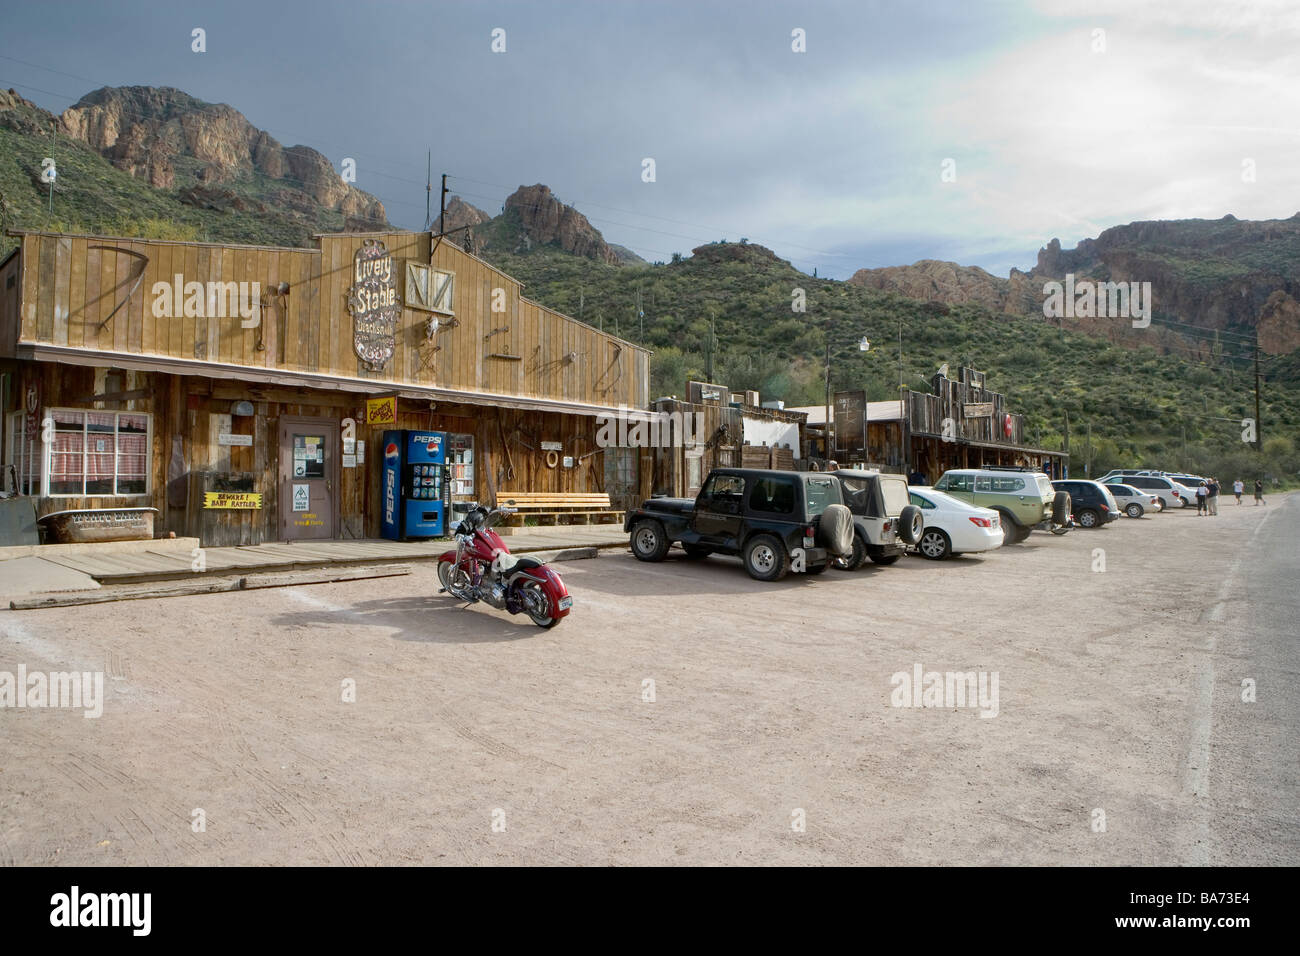 Tortilla Flat is an authentic remnant of an old west town nestled in the midst of the Tonto National Forest Apache - Stock Image